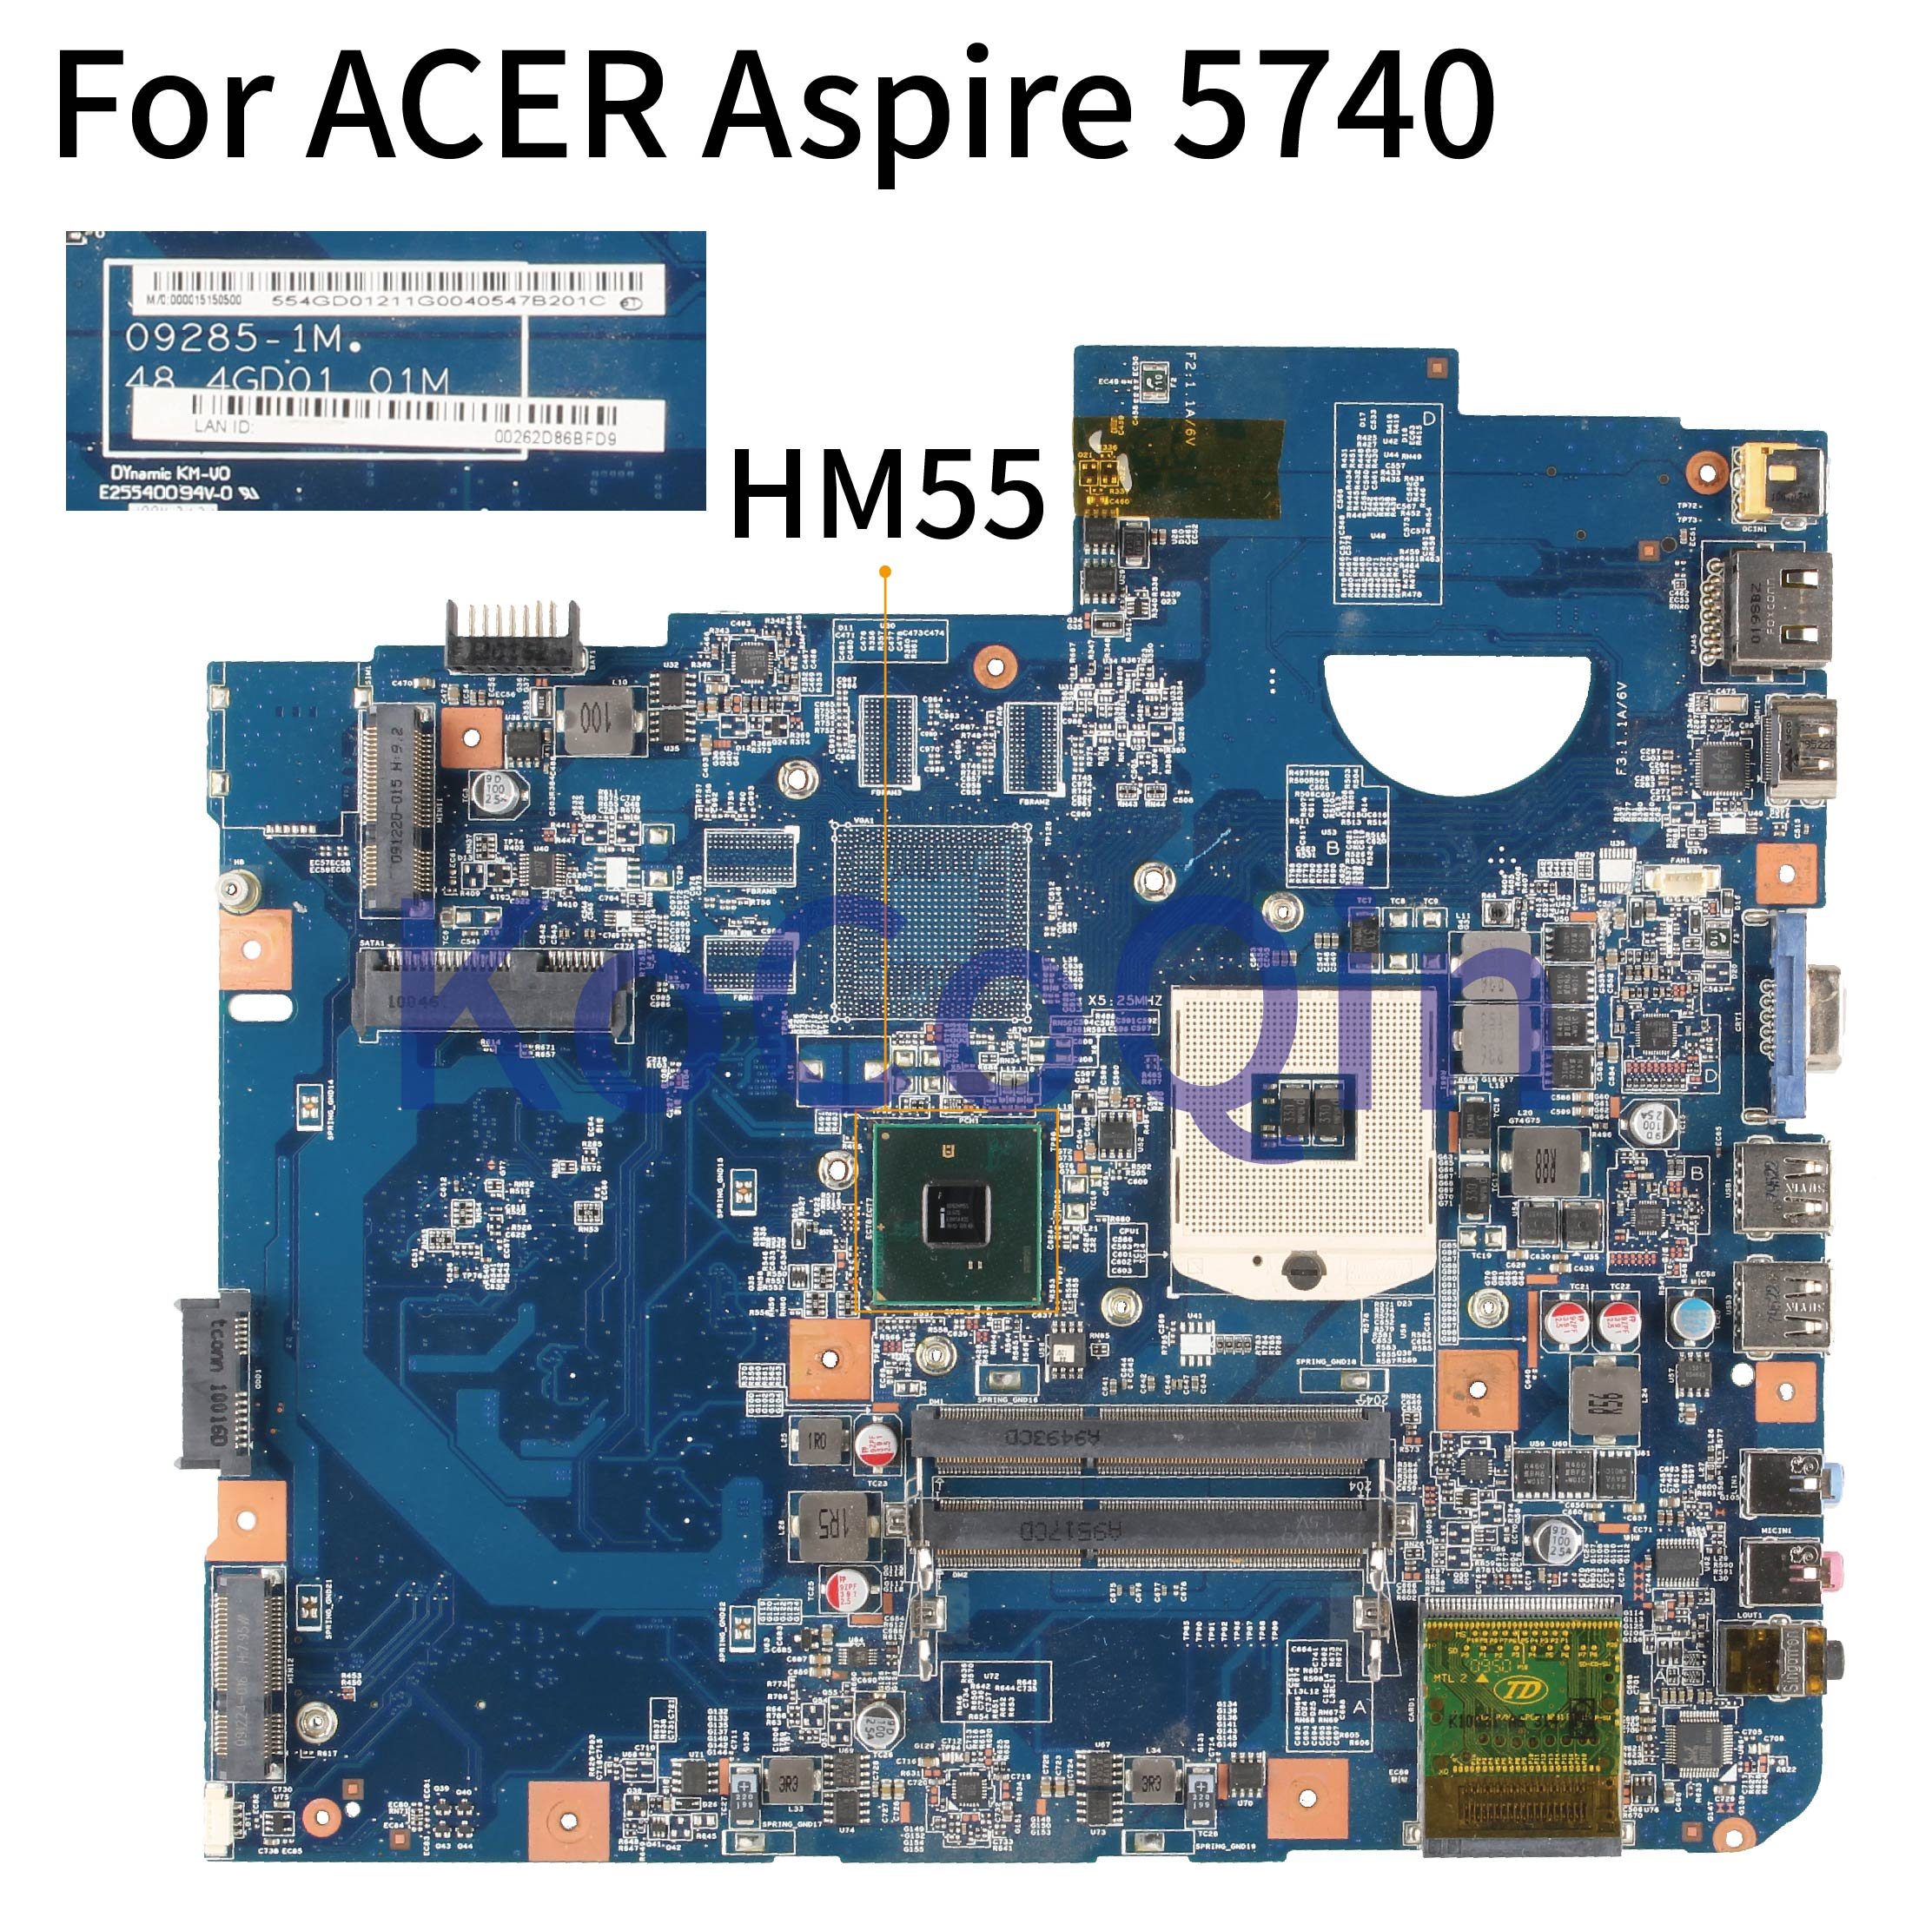 KoCoQin Laptop motherboard For ACER Aspire 5740 5740G HM55 Mainboard 48.4GD01.01M JV50-CP MB 09285-1M image